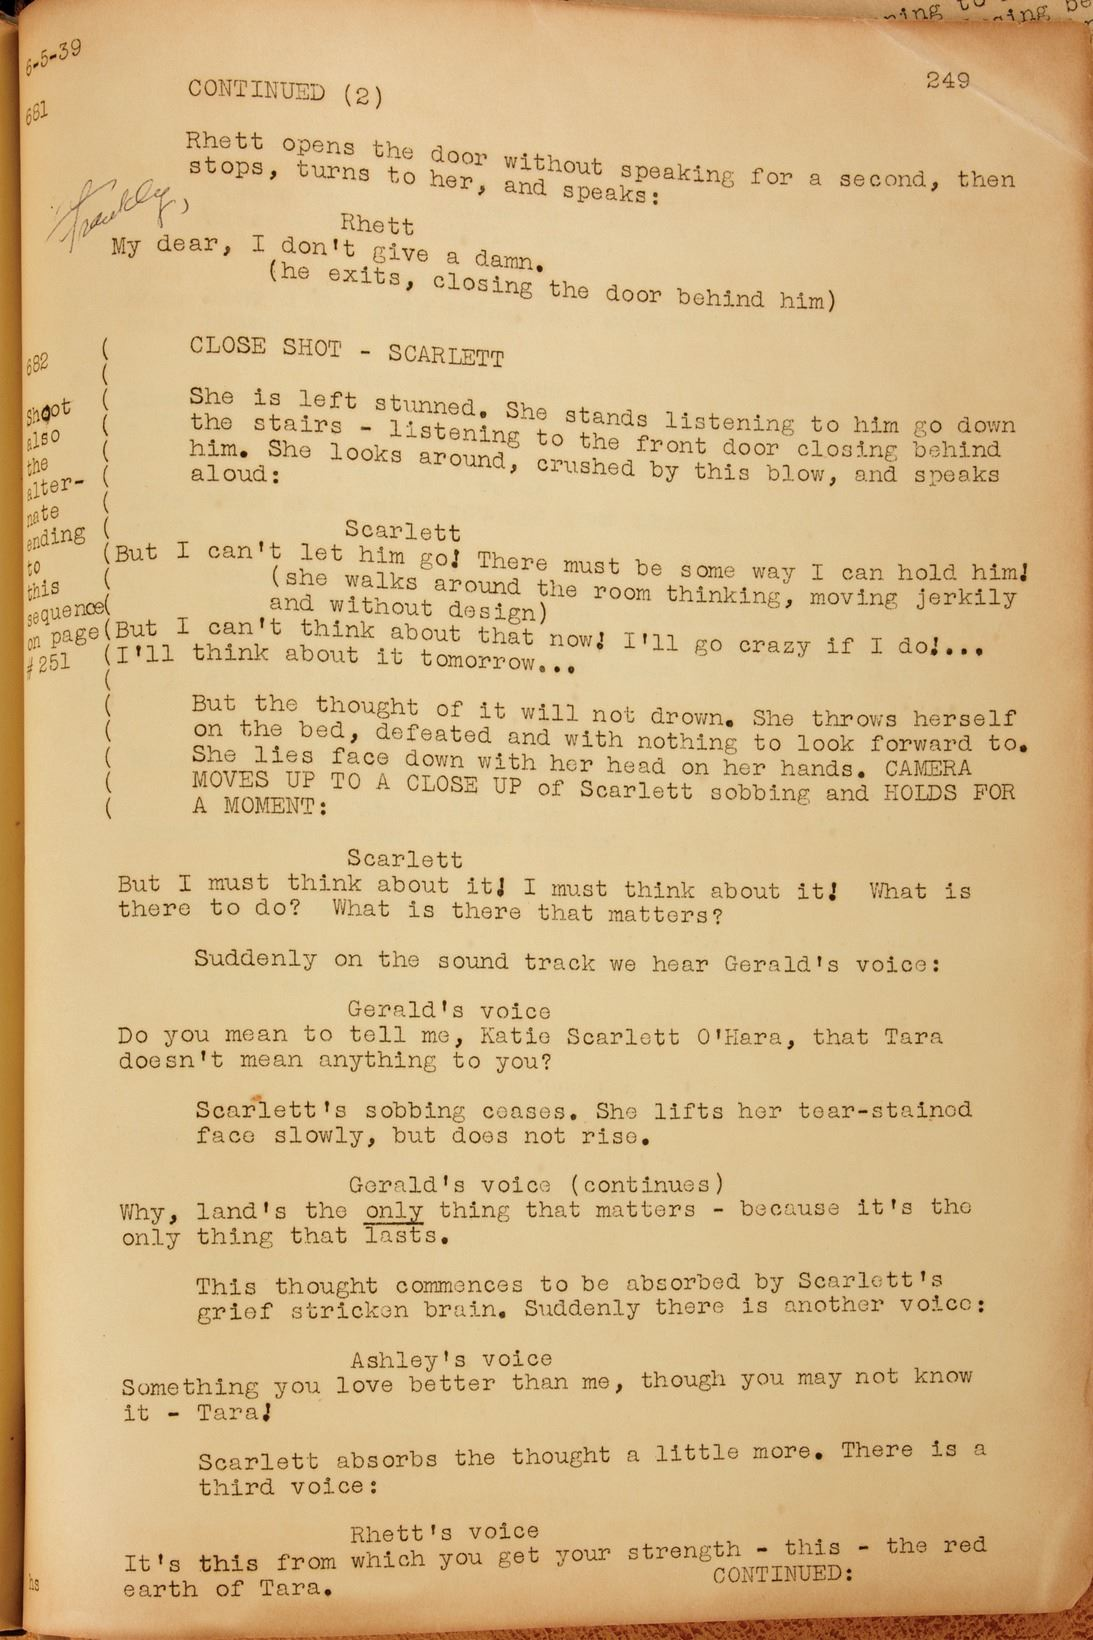 Gone With The Wind Set Shooting Script With Alternate Ending In